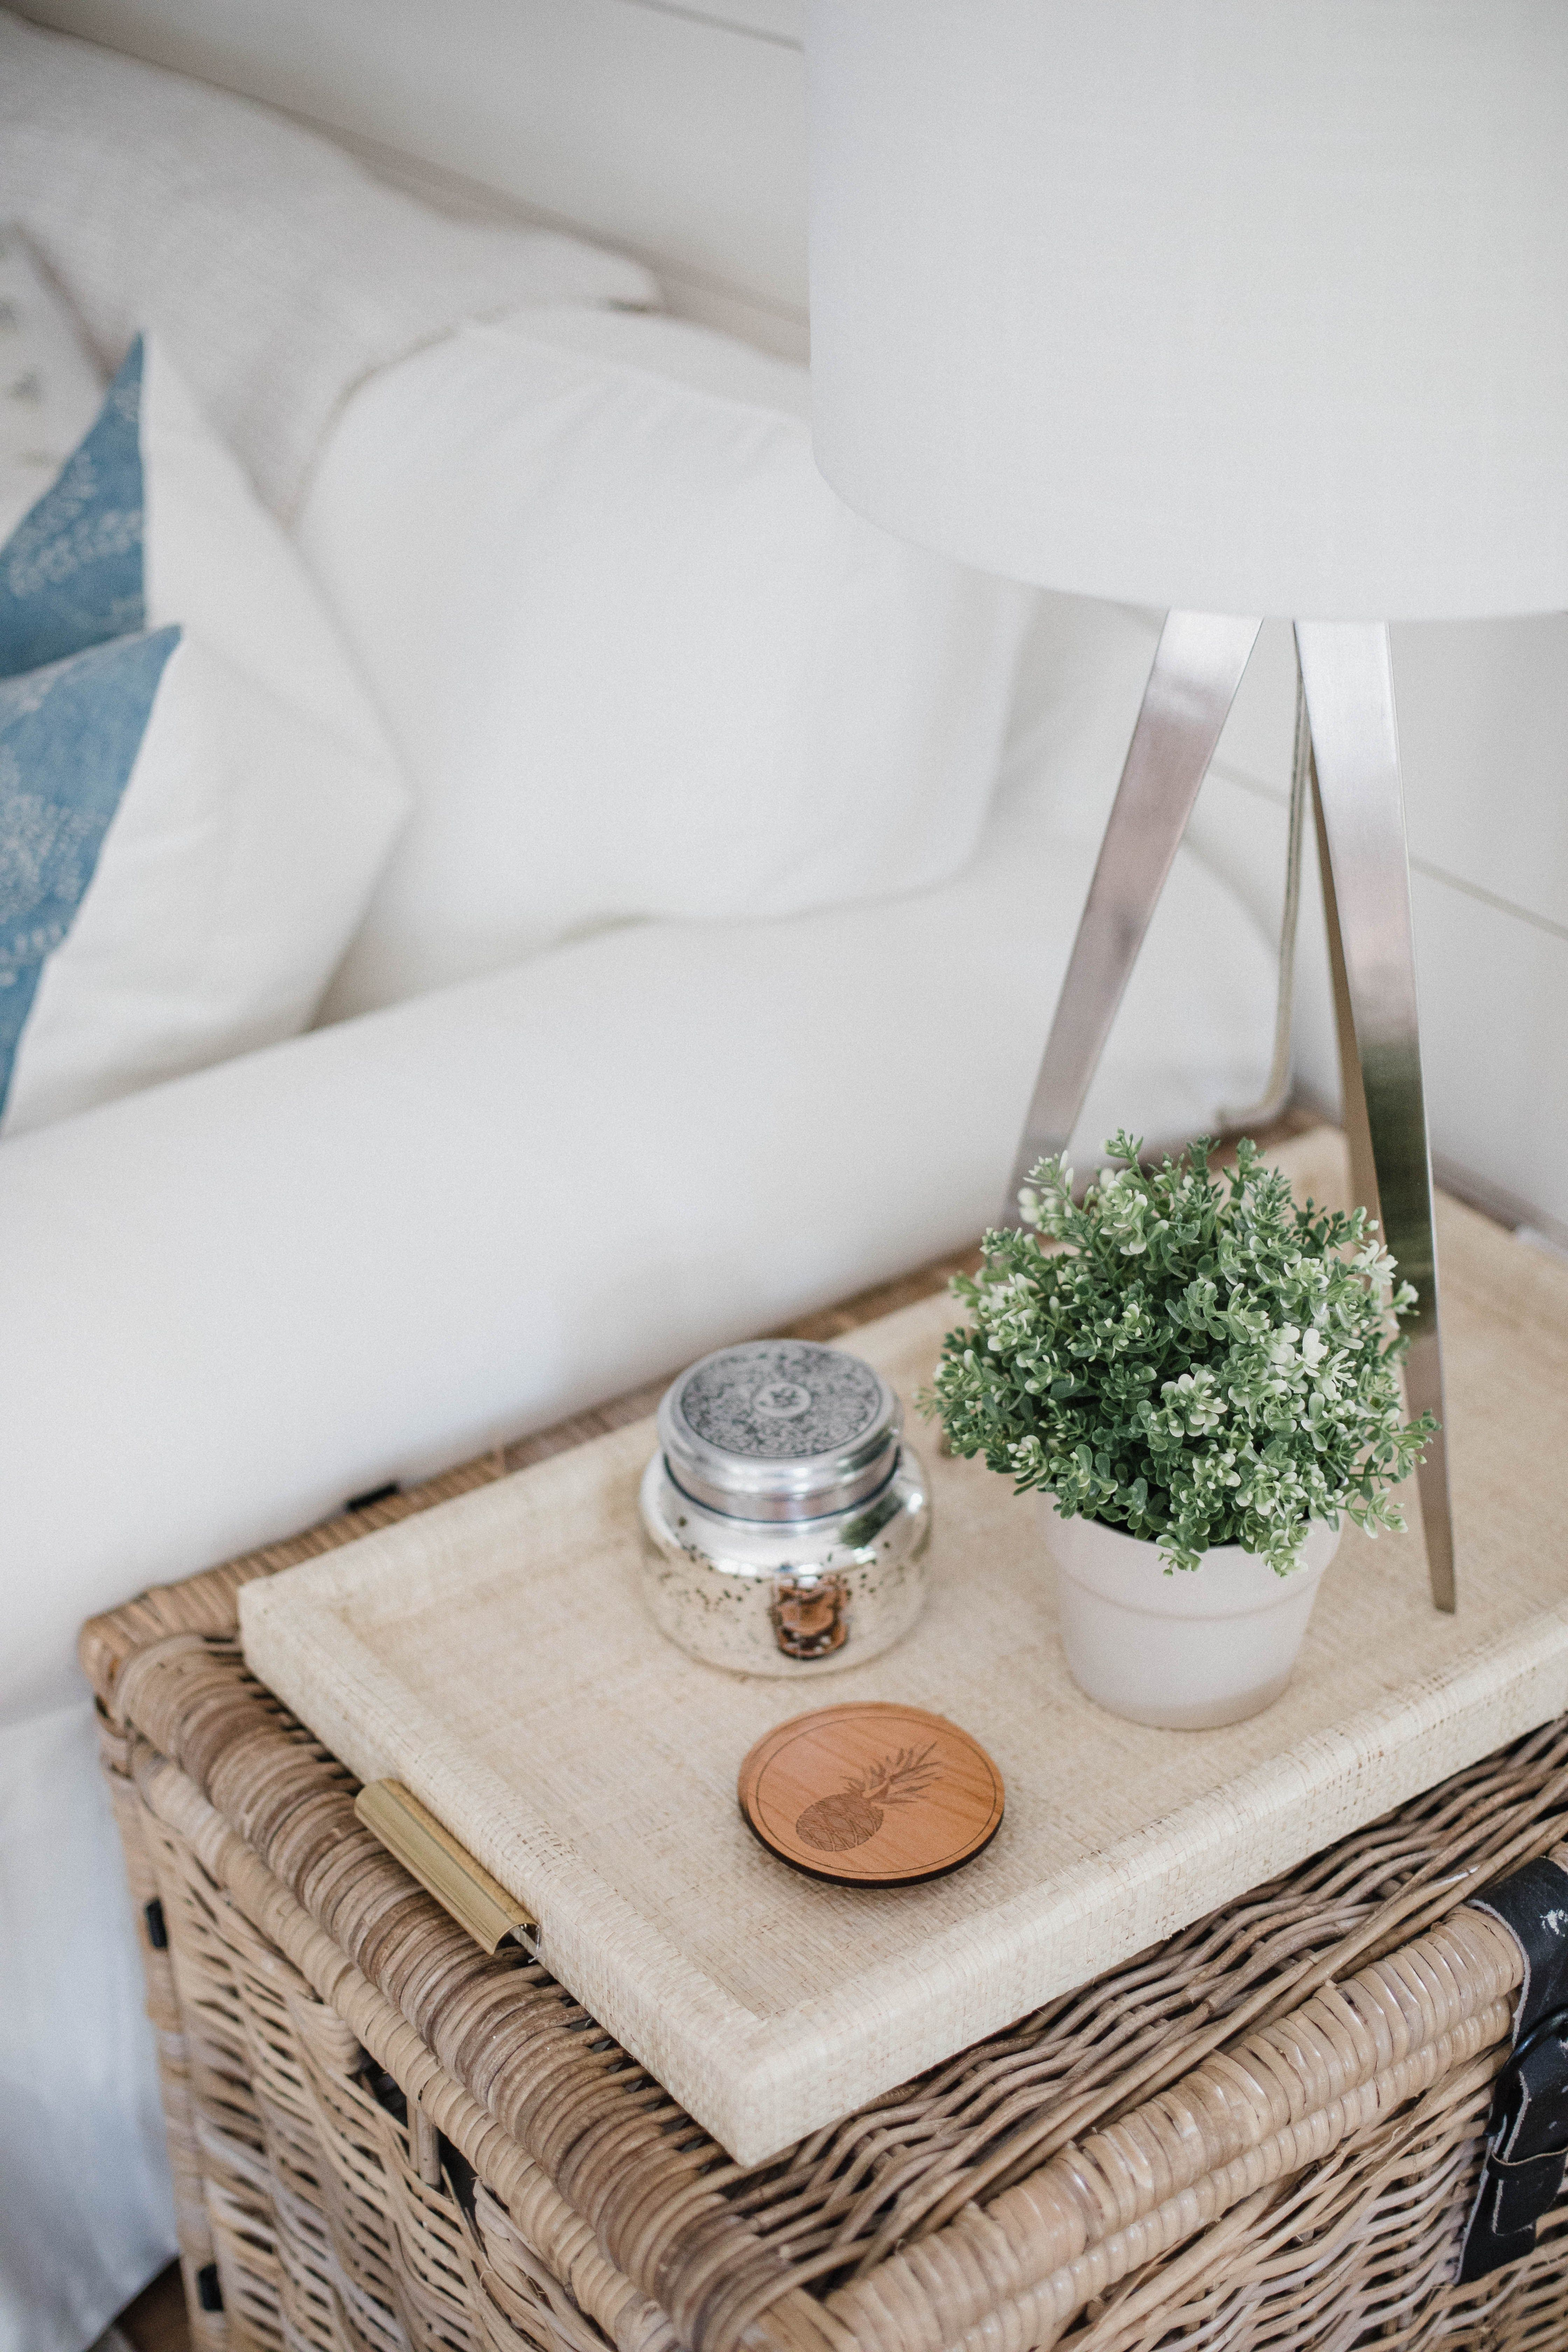 Best handmade housewarming gifts on amazon with images